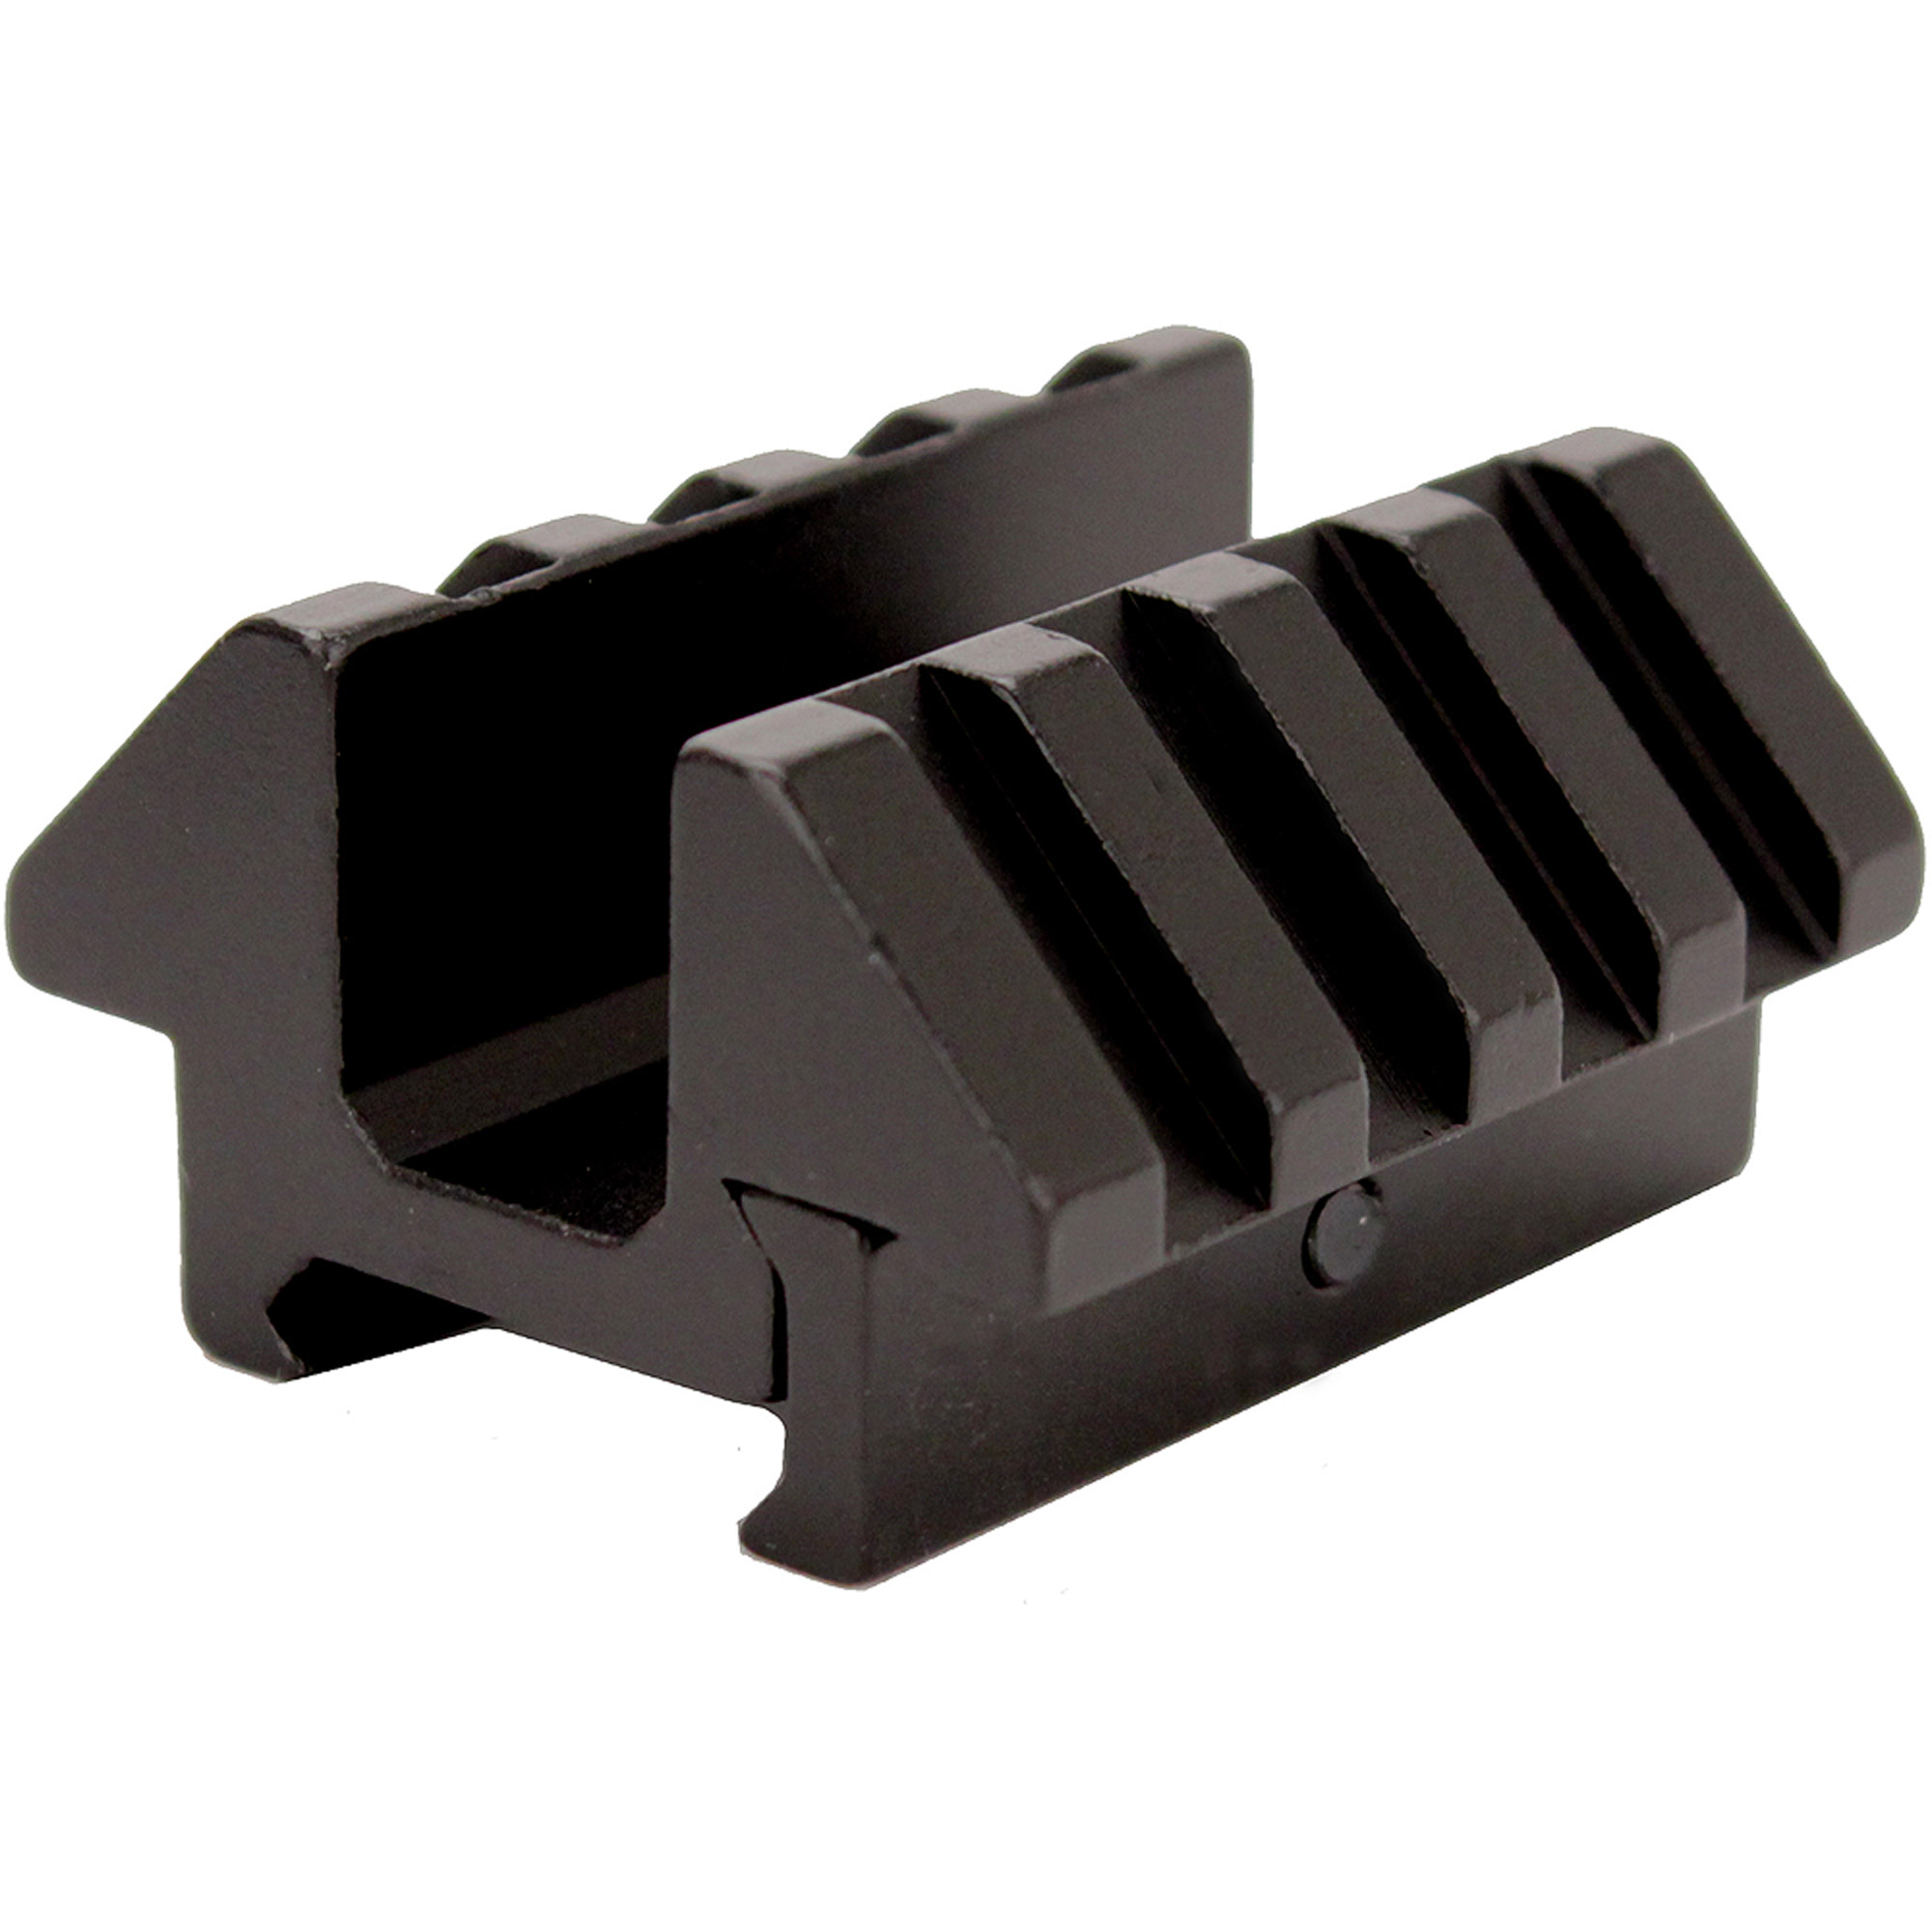 Barska Optics Rail Picatinny Dual Offset